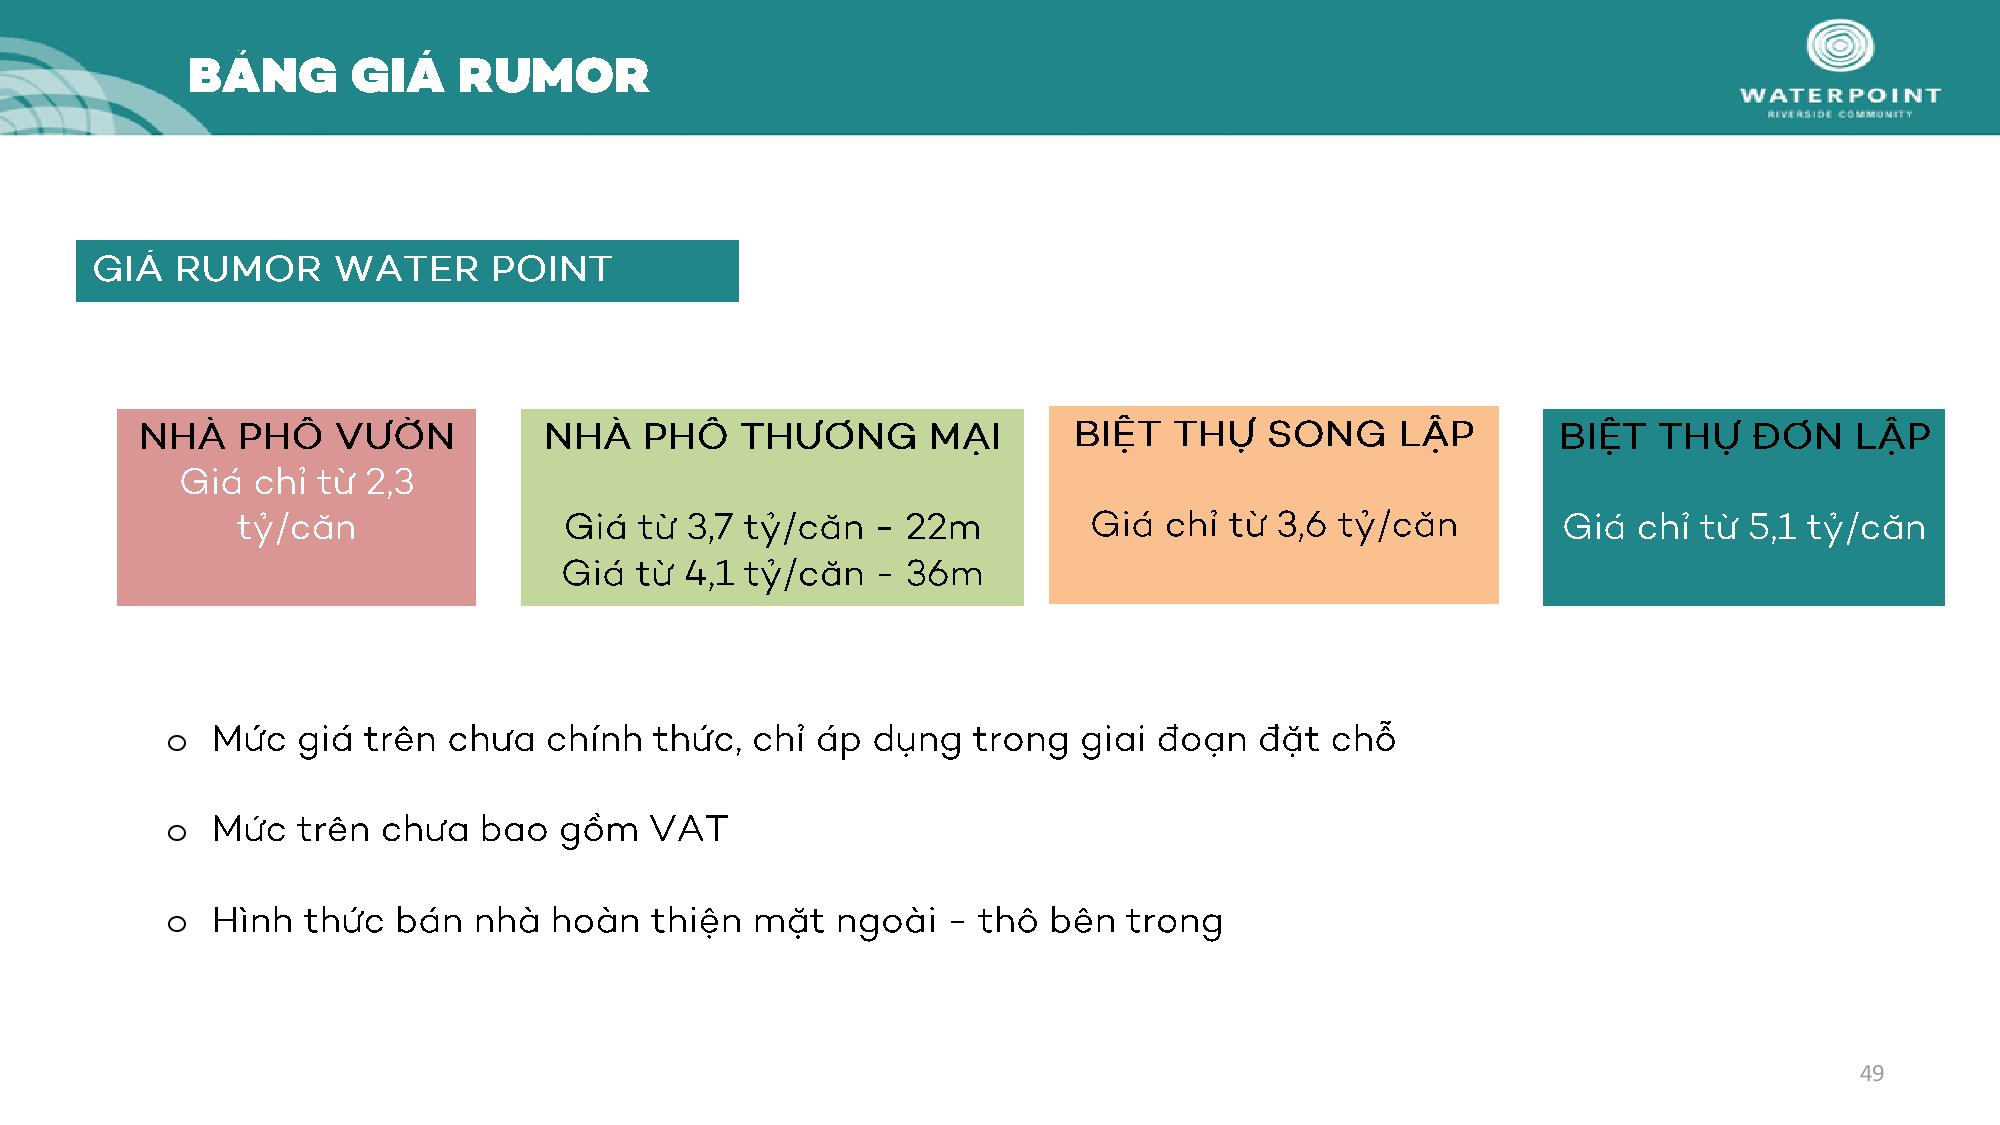 Bảng giá Rumor Waterpoint Long An